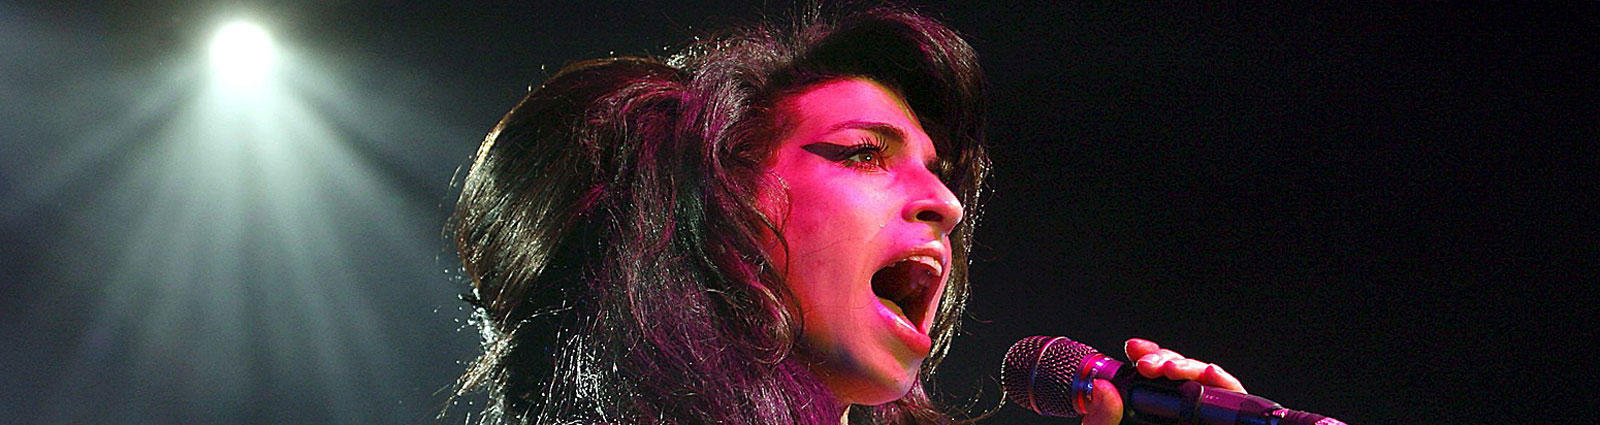 Amy Winehouse on stage